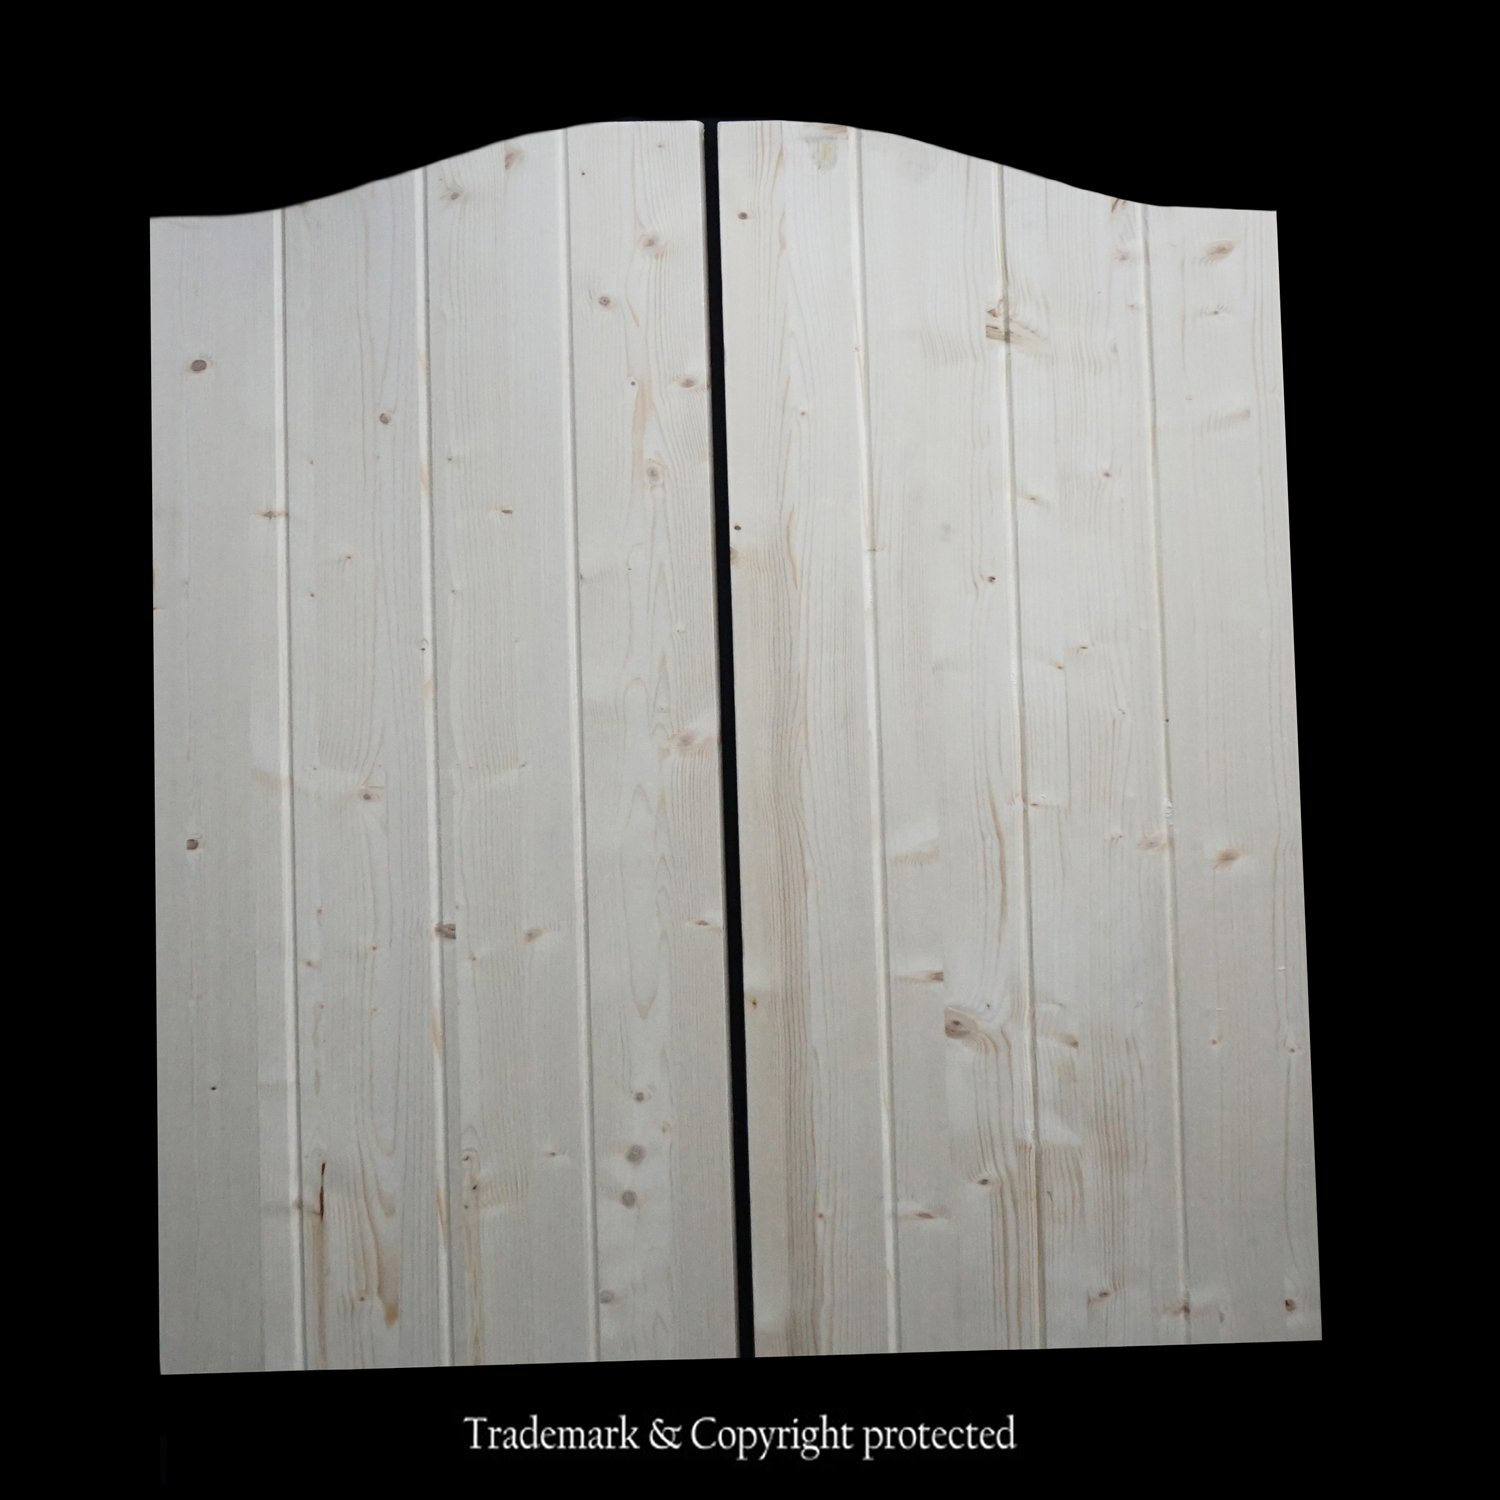 Cafe Doors by Cafe Doors Emporium Knotty-Pine Flush Style with V-Grooves Saloon Western Bar Door Saloon Western Style Swinging Bar Pub Door Includes Hinges Premade for 36W Finished Opening